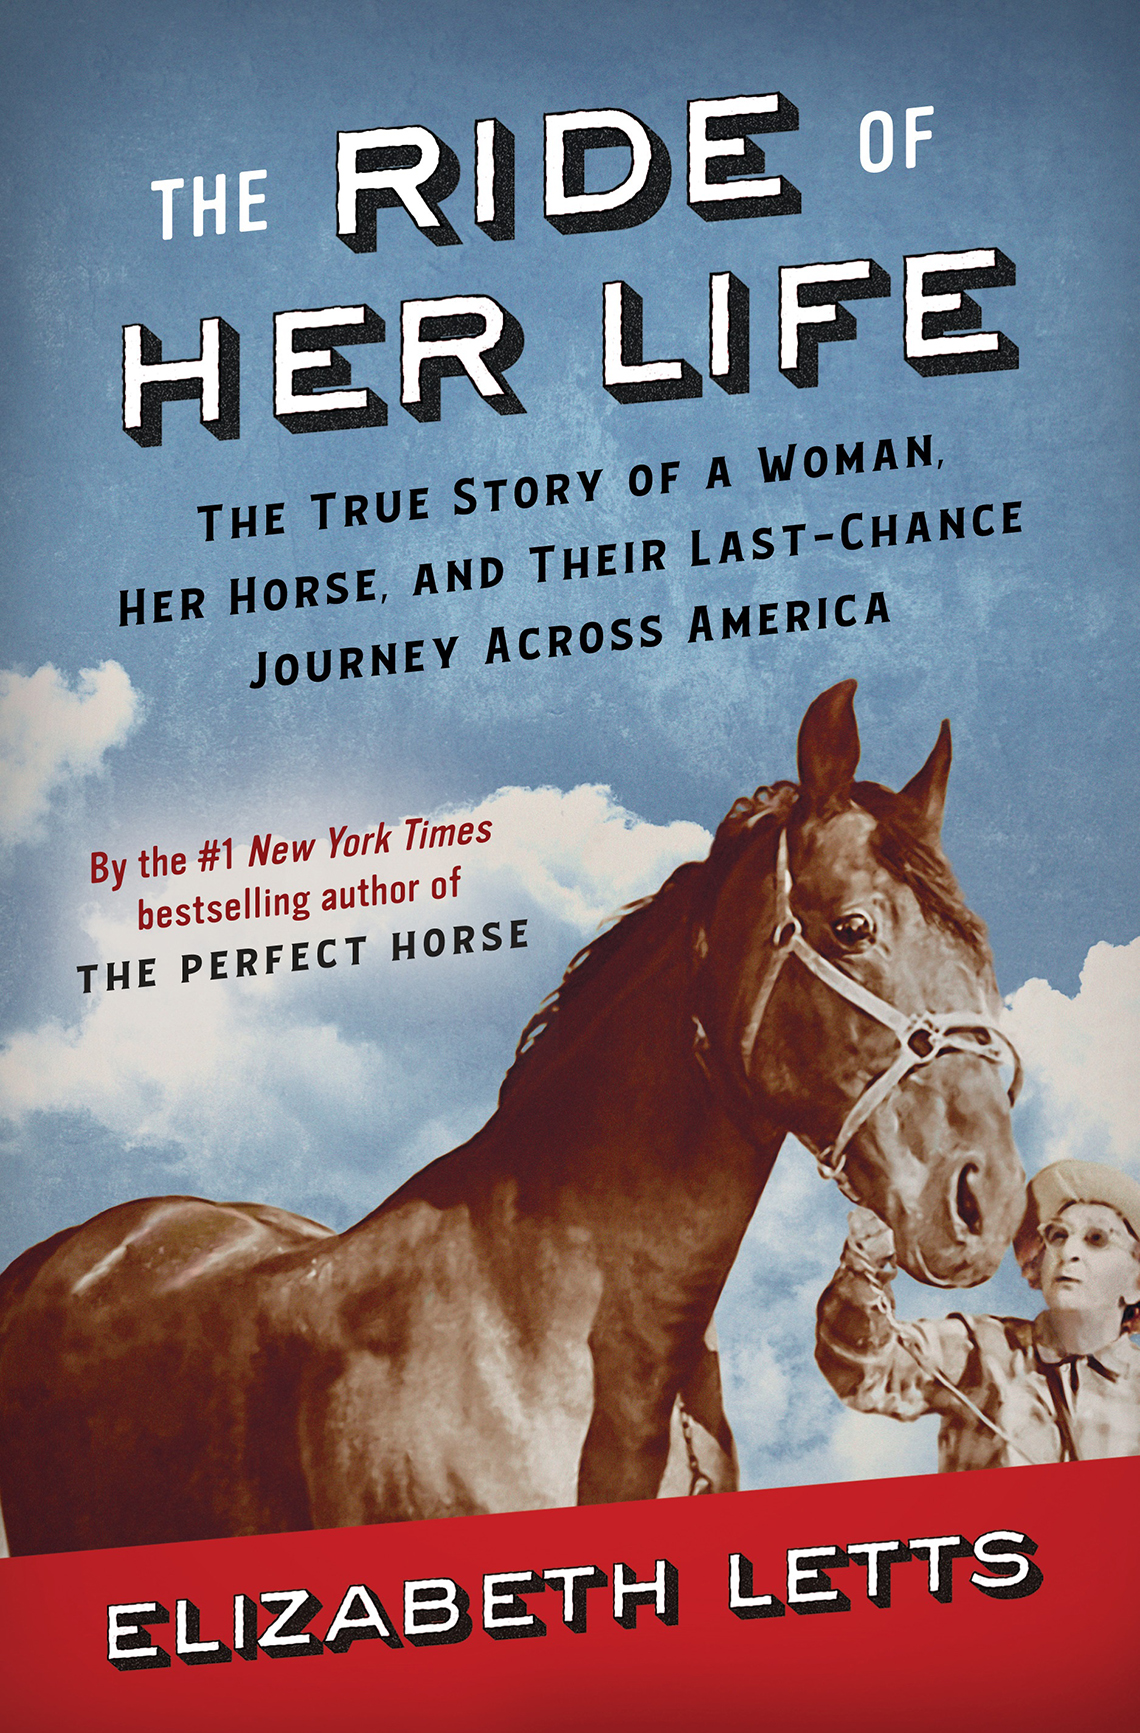 the ride of her life the true story of a woman her horse and their last chance journey across america by elizabeth letts